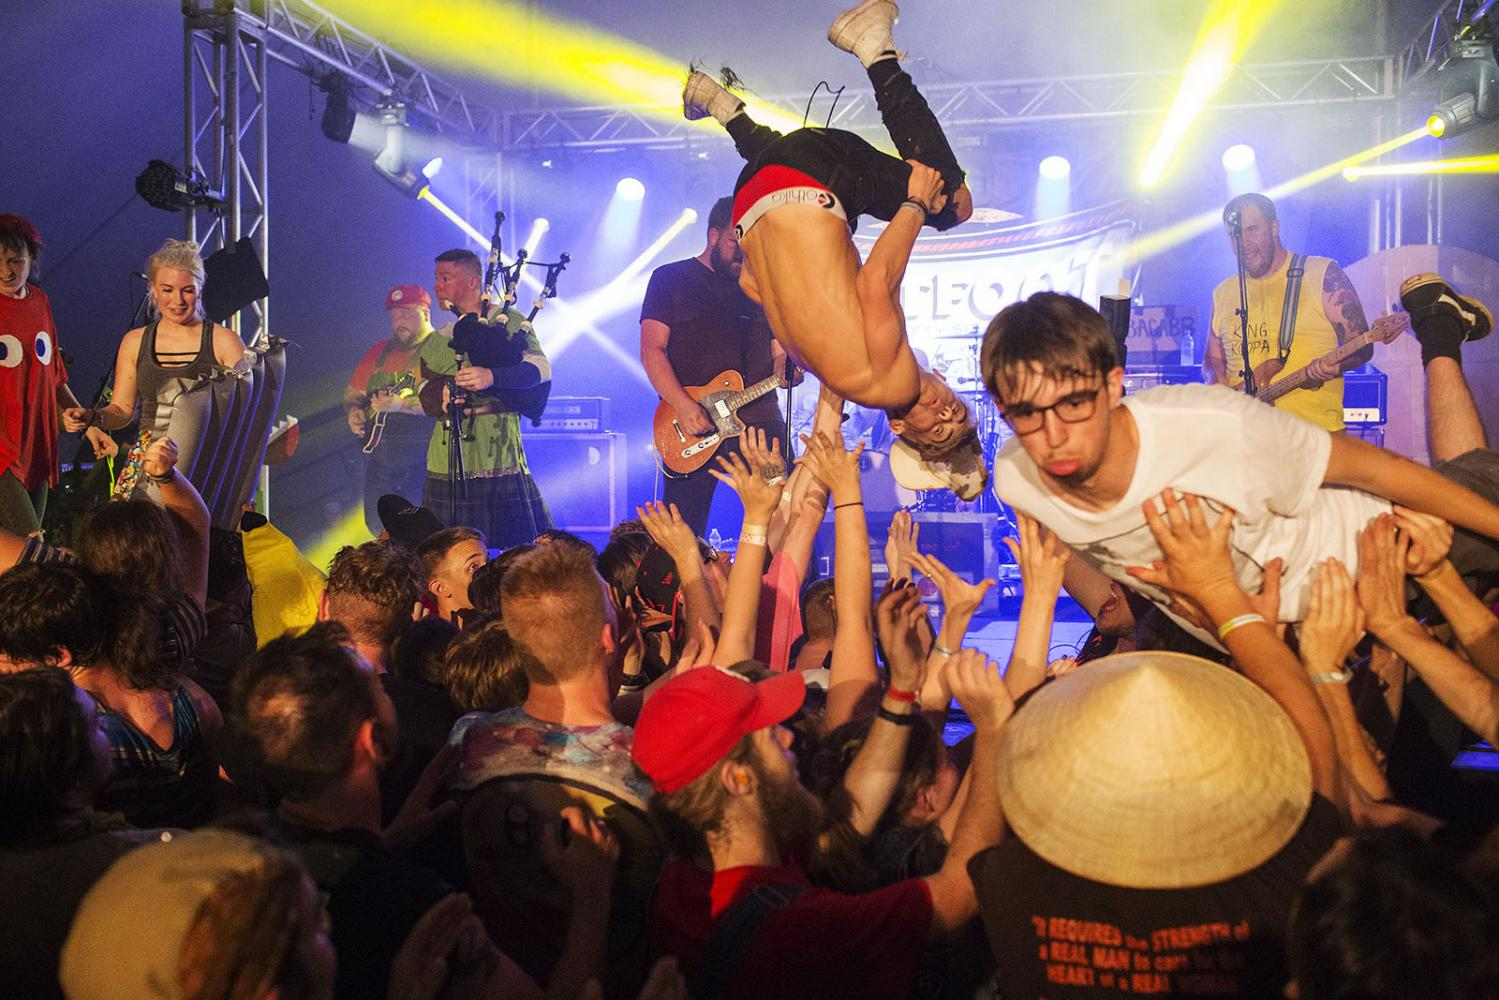 Fans crowd surf to Irish punk band Flatfoot 56 at Audiofeed Festival in Urbana, Illinois on Sunday, July 2, 2017. © 2017 KC McGinnis